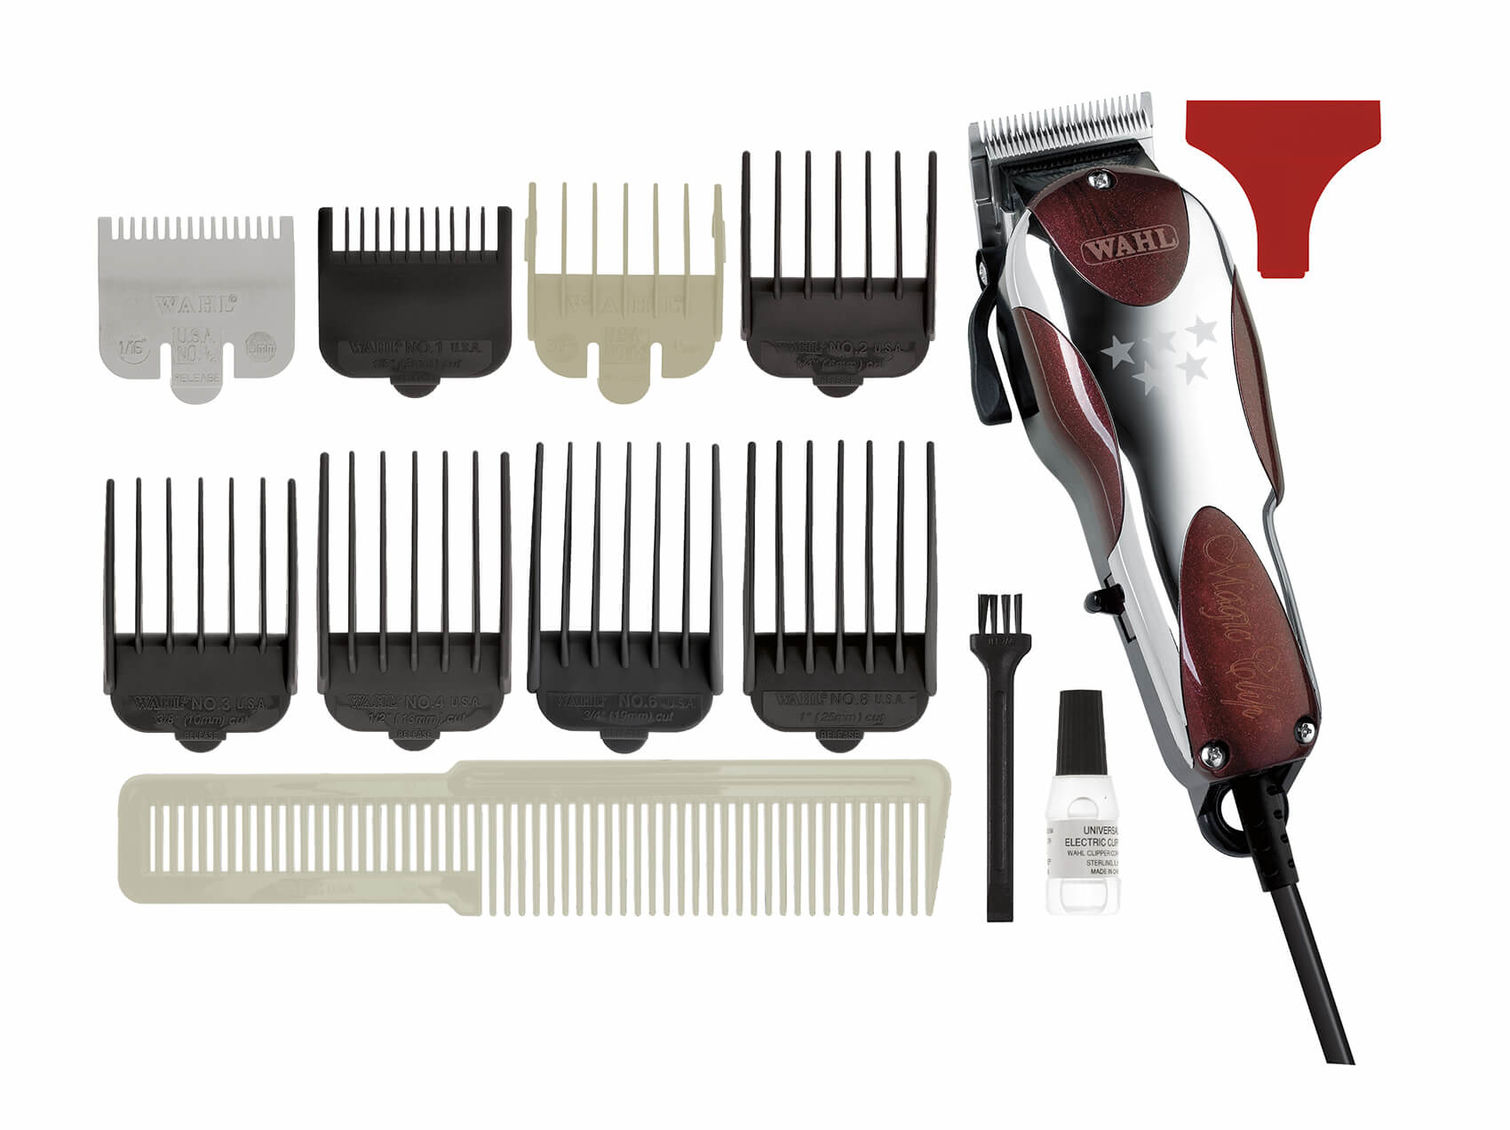 Wahl 8451 016 Magic Clip Corded Clipper